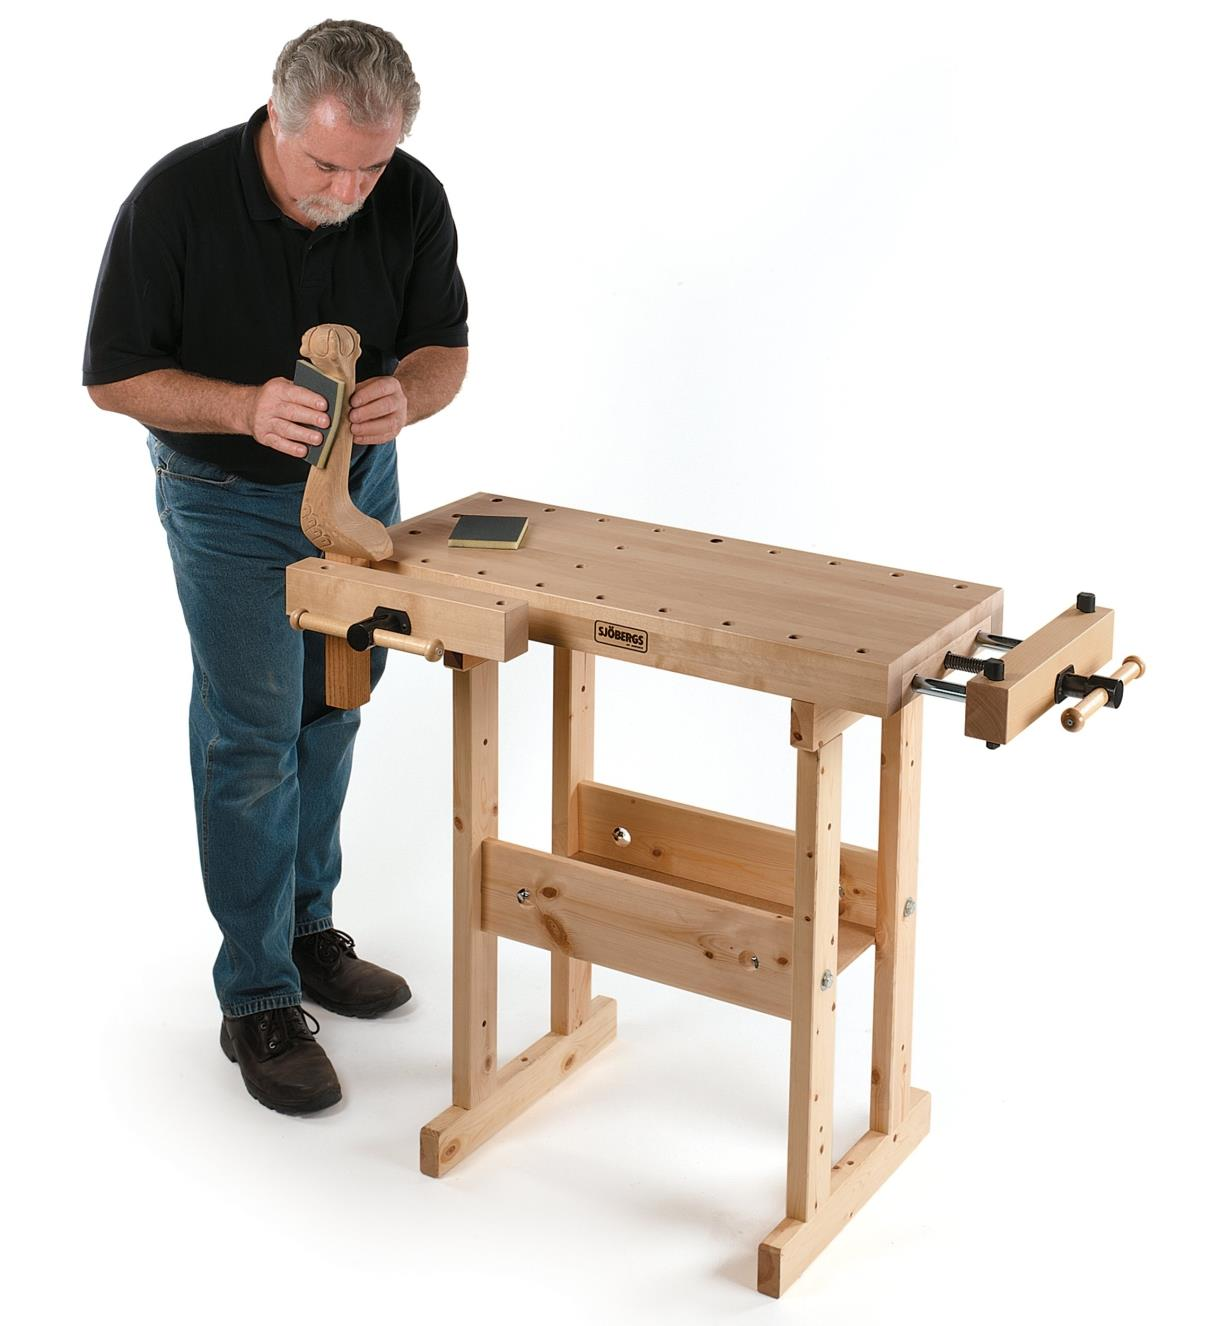 03A0280 - Sjöbergs Compact Workbench